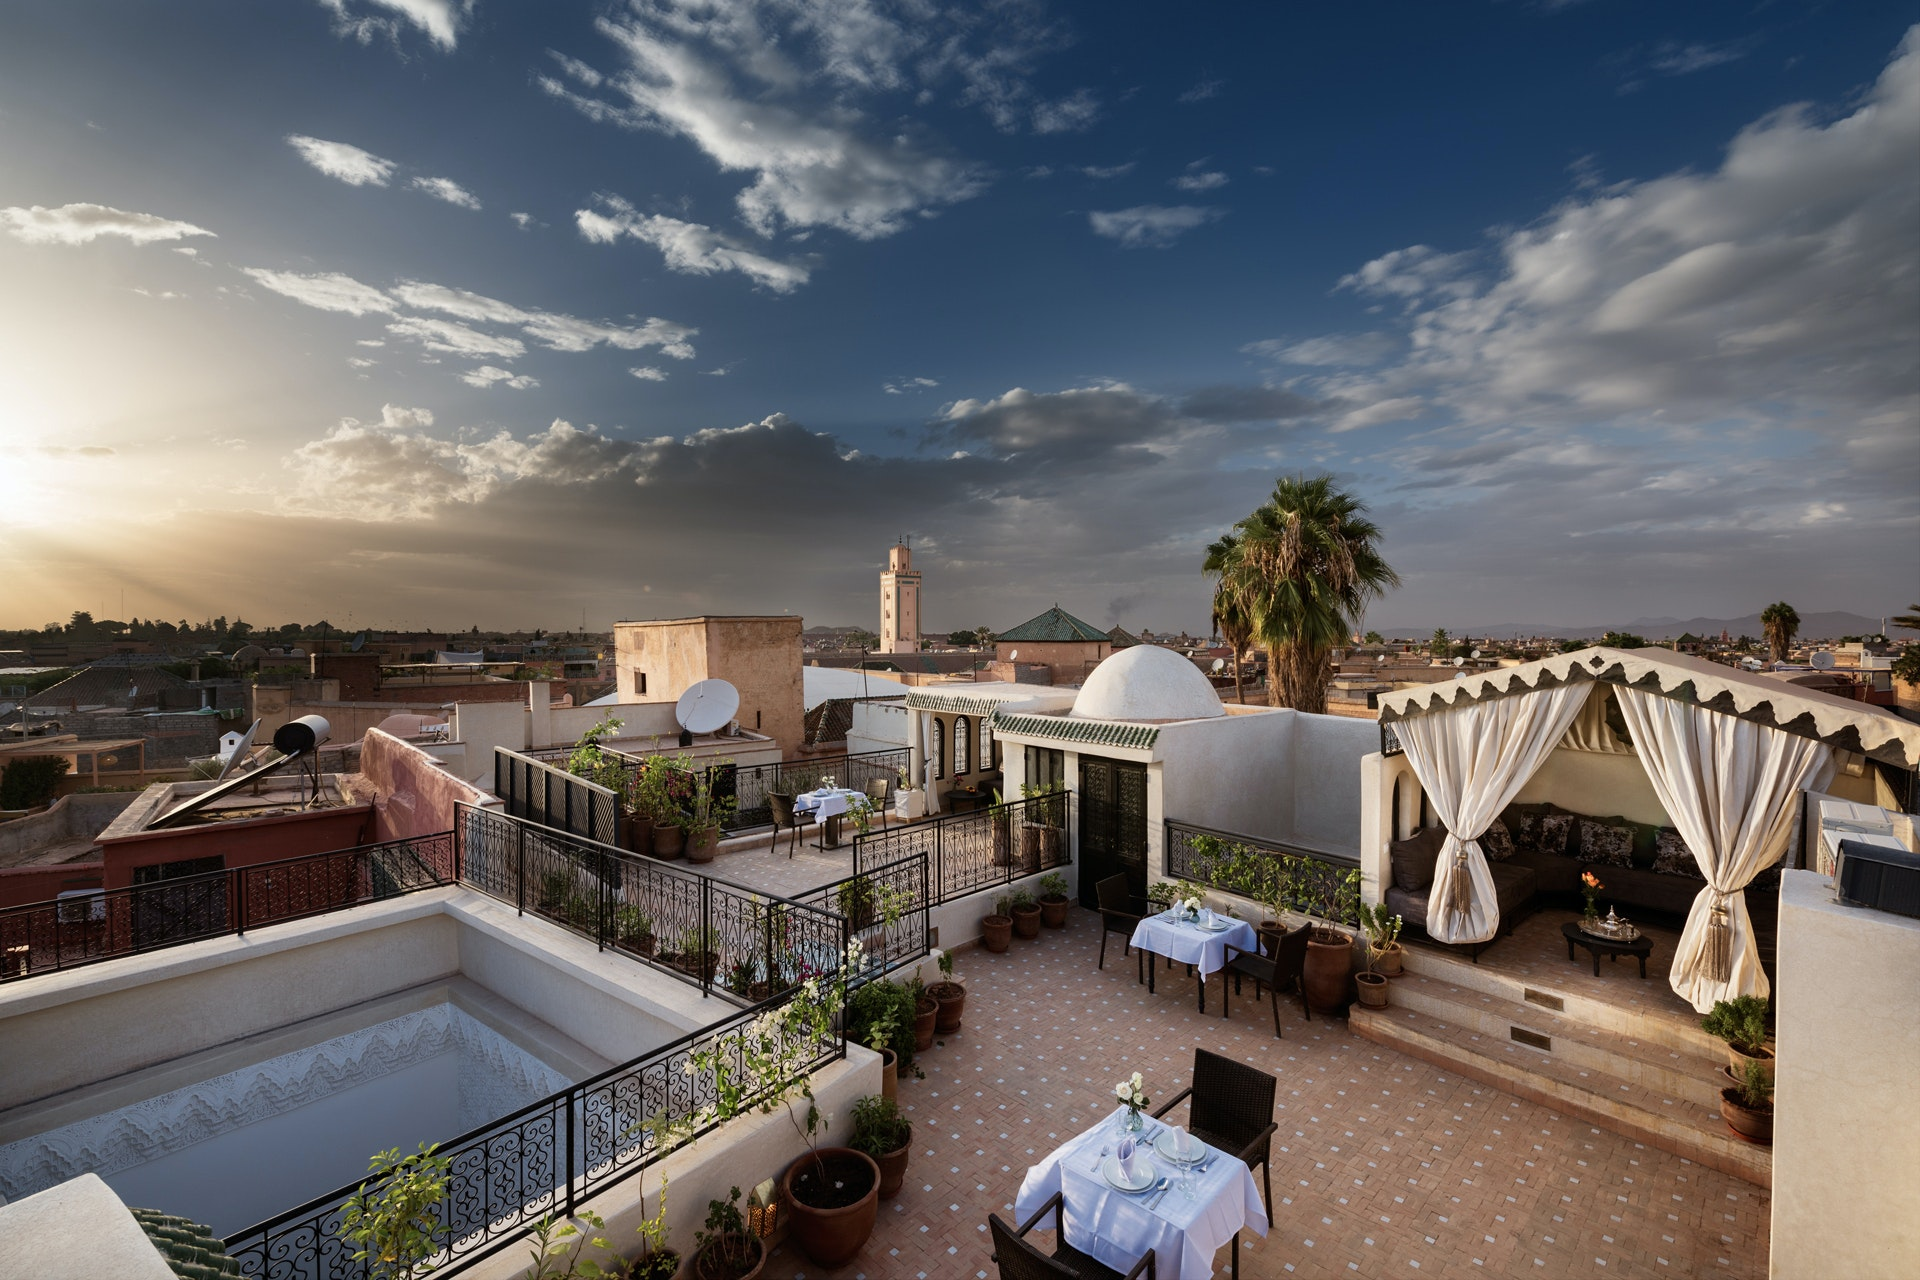 The expansive Riad Star was once the home of Josephine Baker; its rooftop terrace features three separate lounge areas.